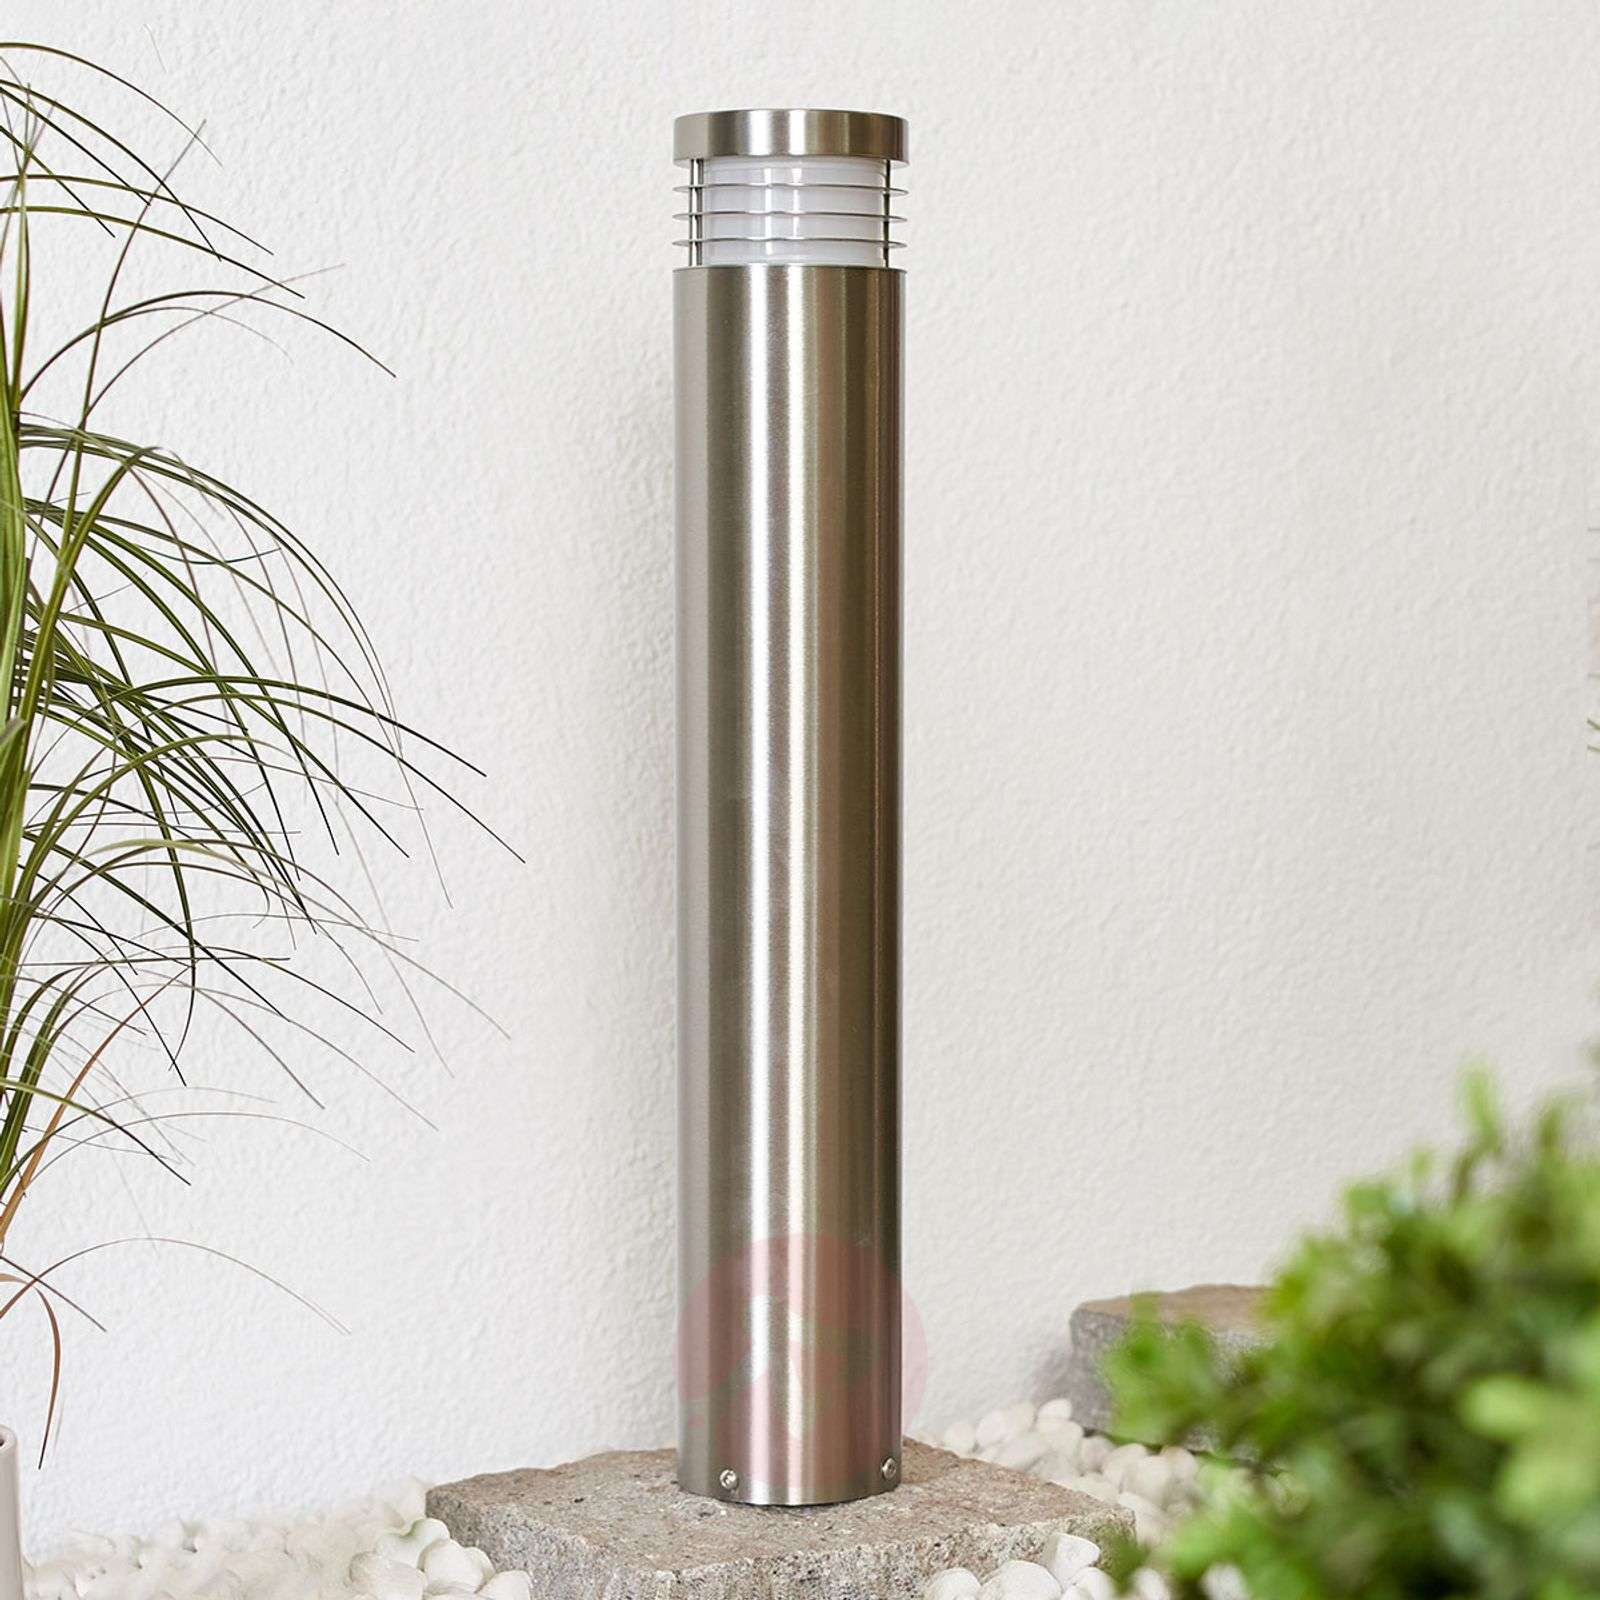 Stainless steel path lamp Caramia-9943014-02